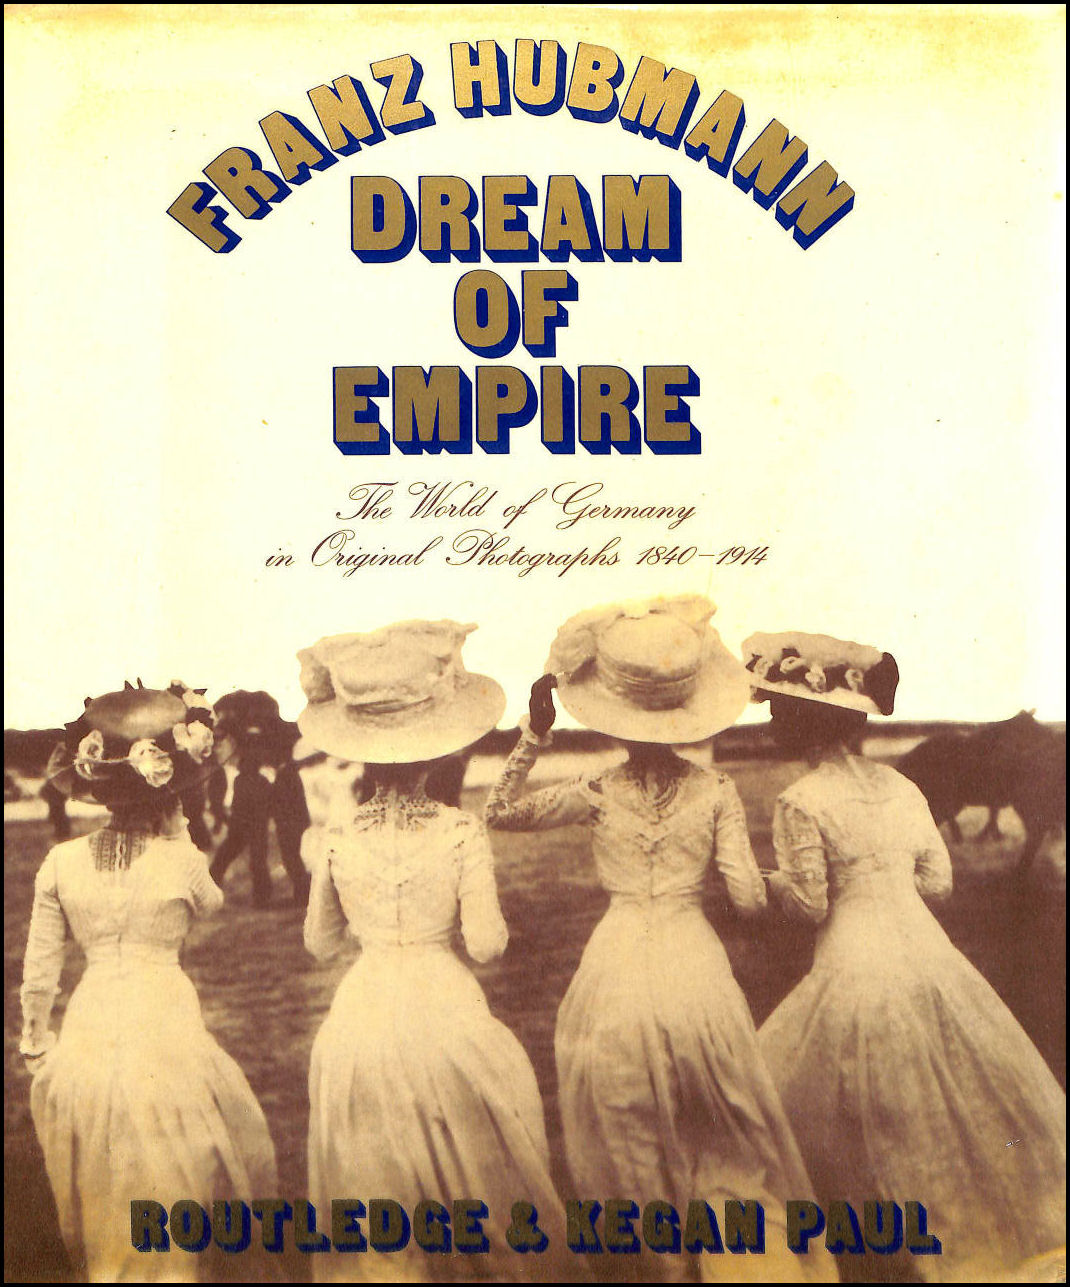 Image for Dream of Empire: World of Germany in Original Photographs, 1840-1914